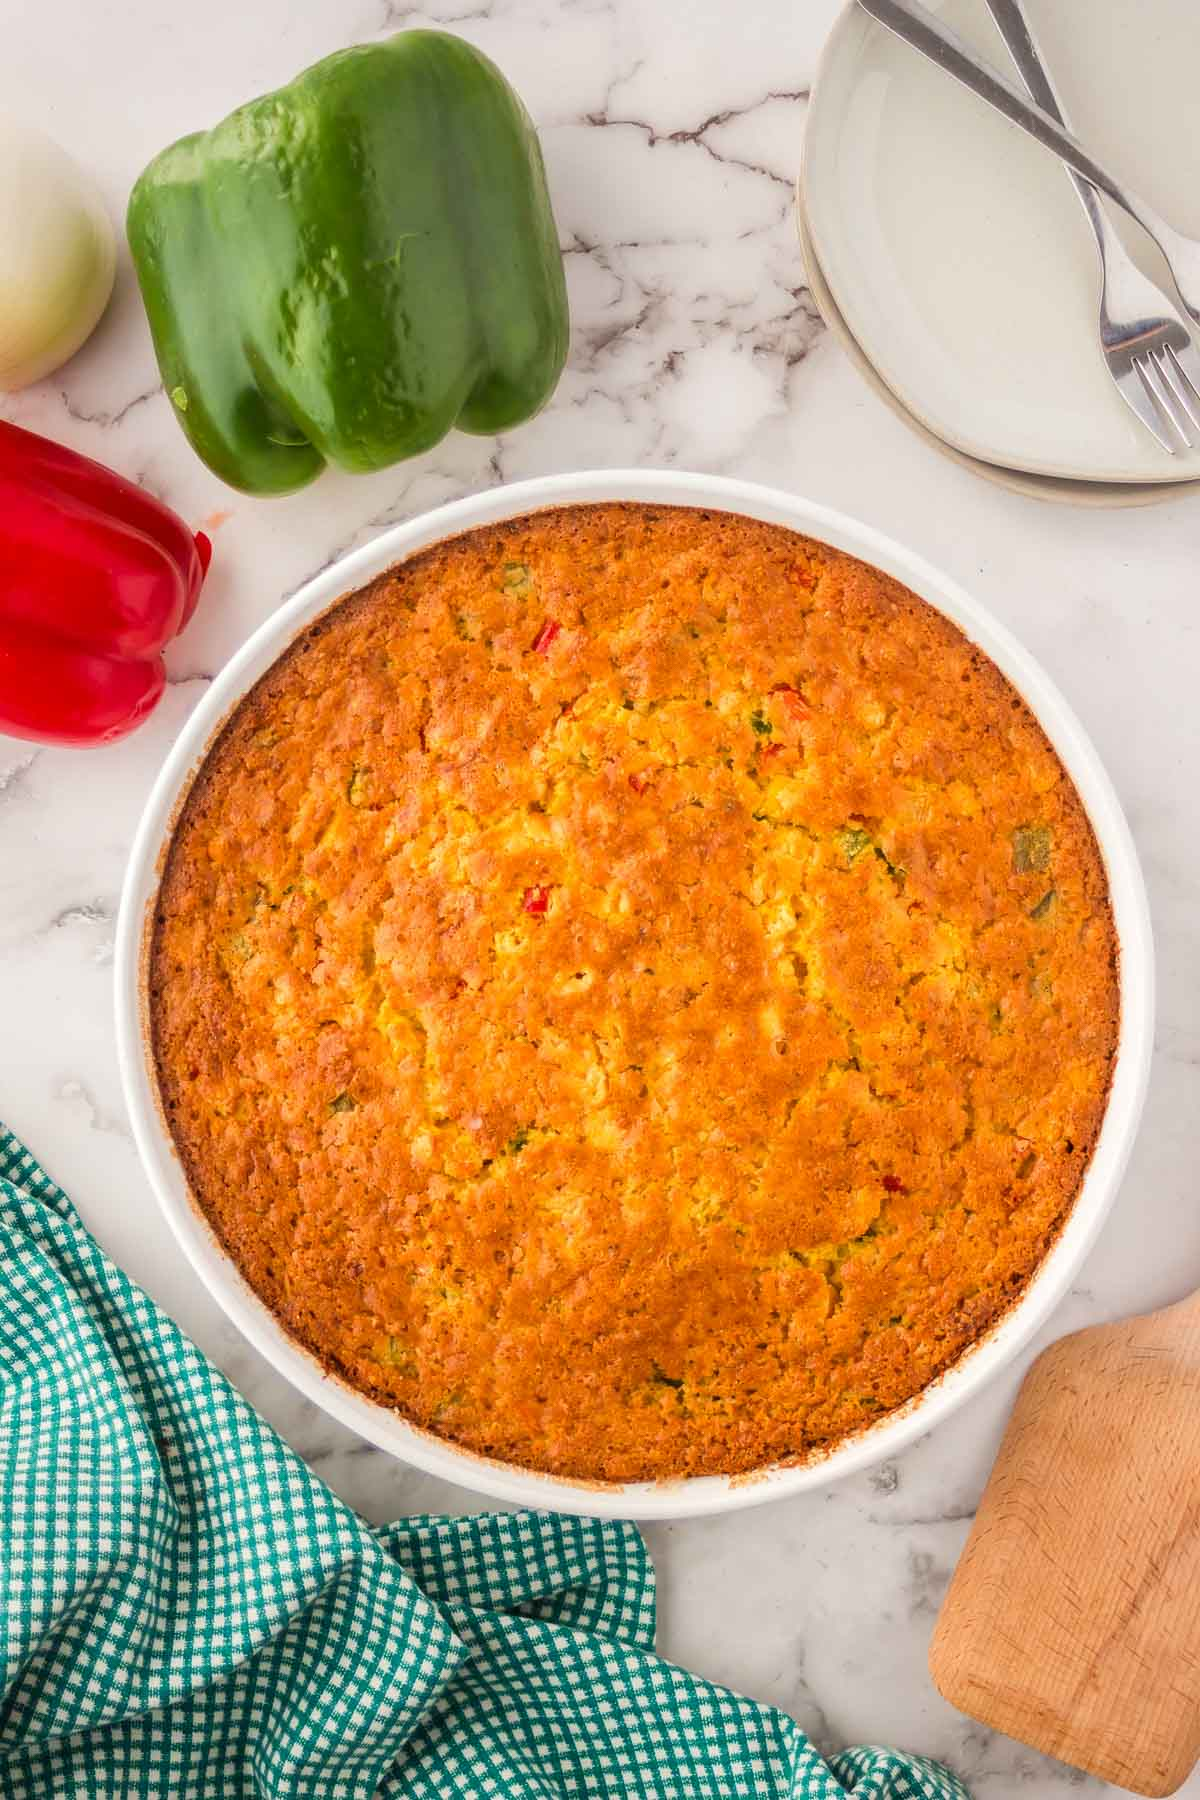 Baked trini corn casserole, in a circular white dish with a green bell peppers, plates and napkin